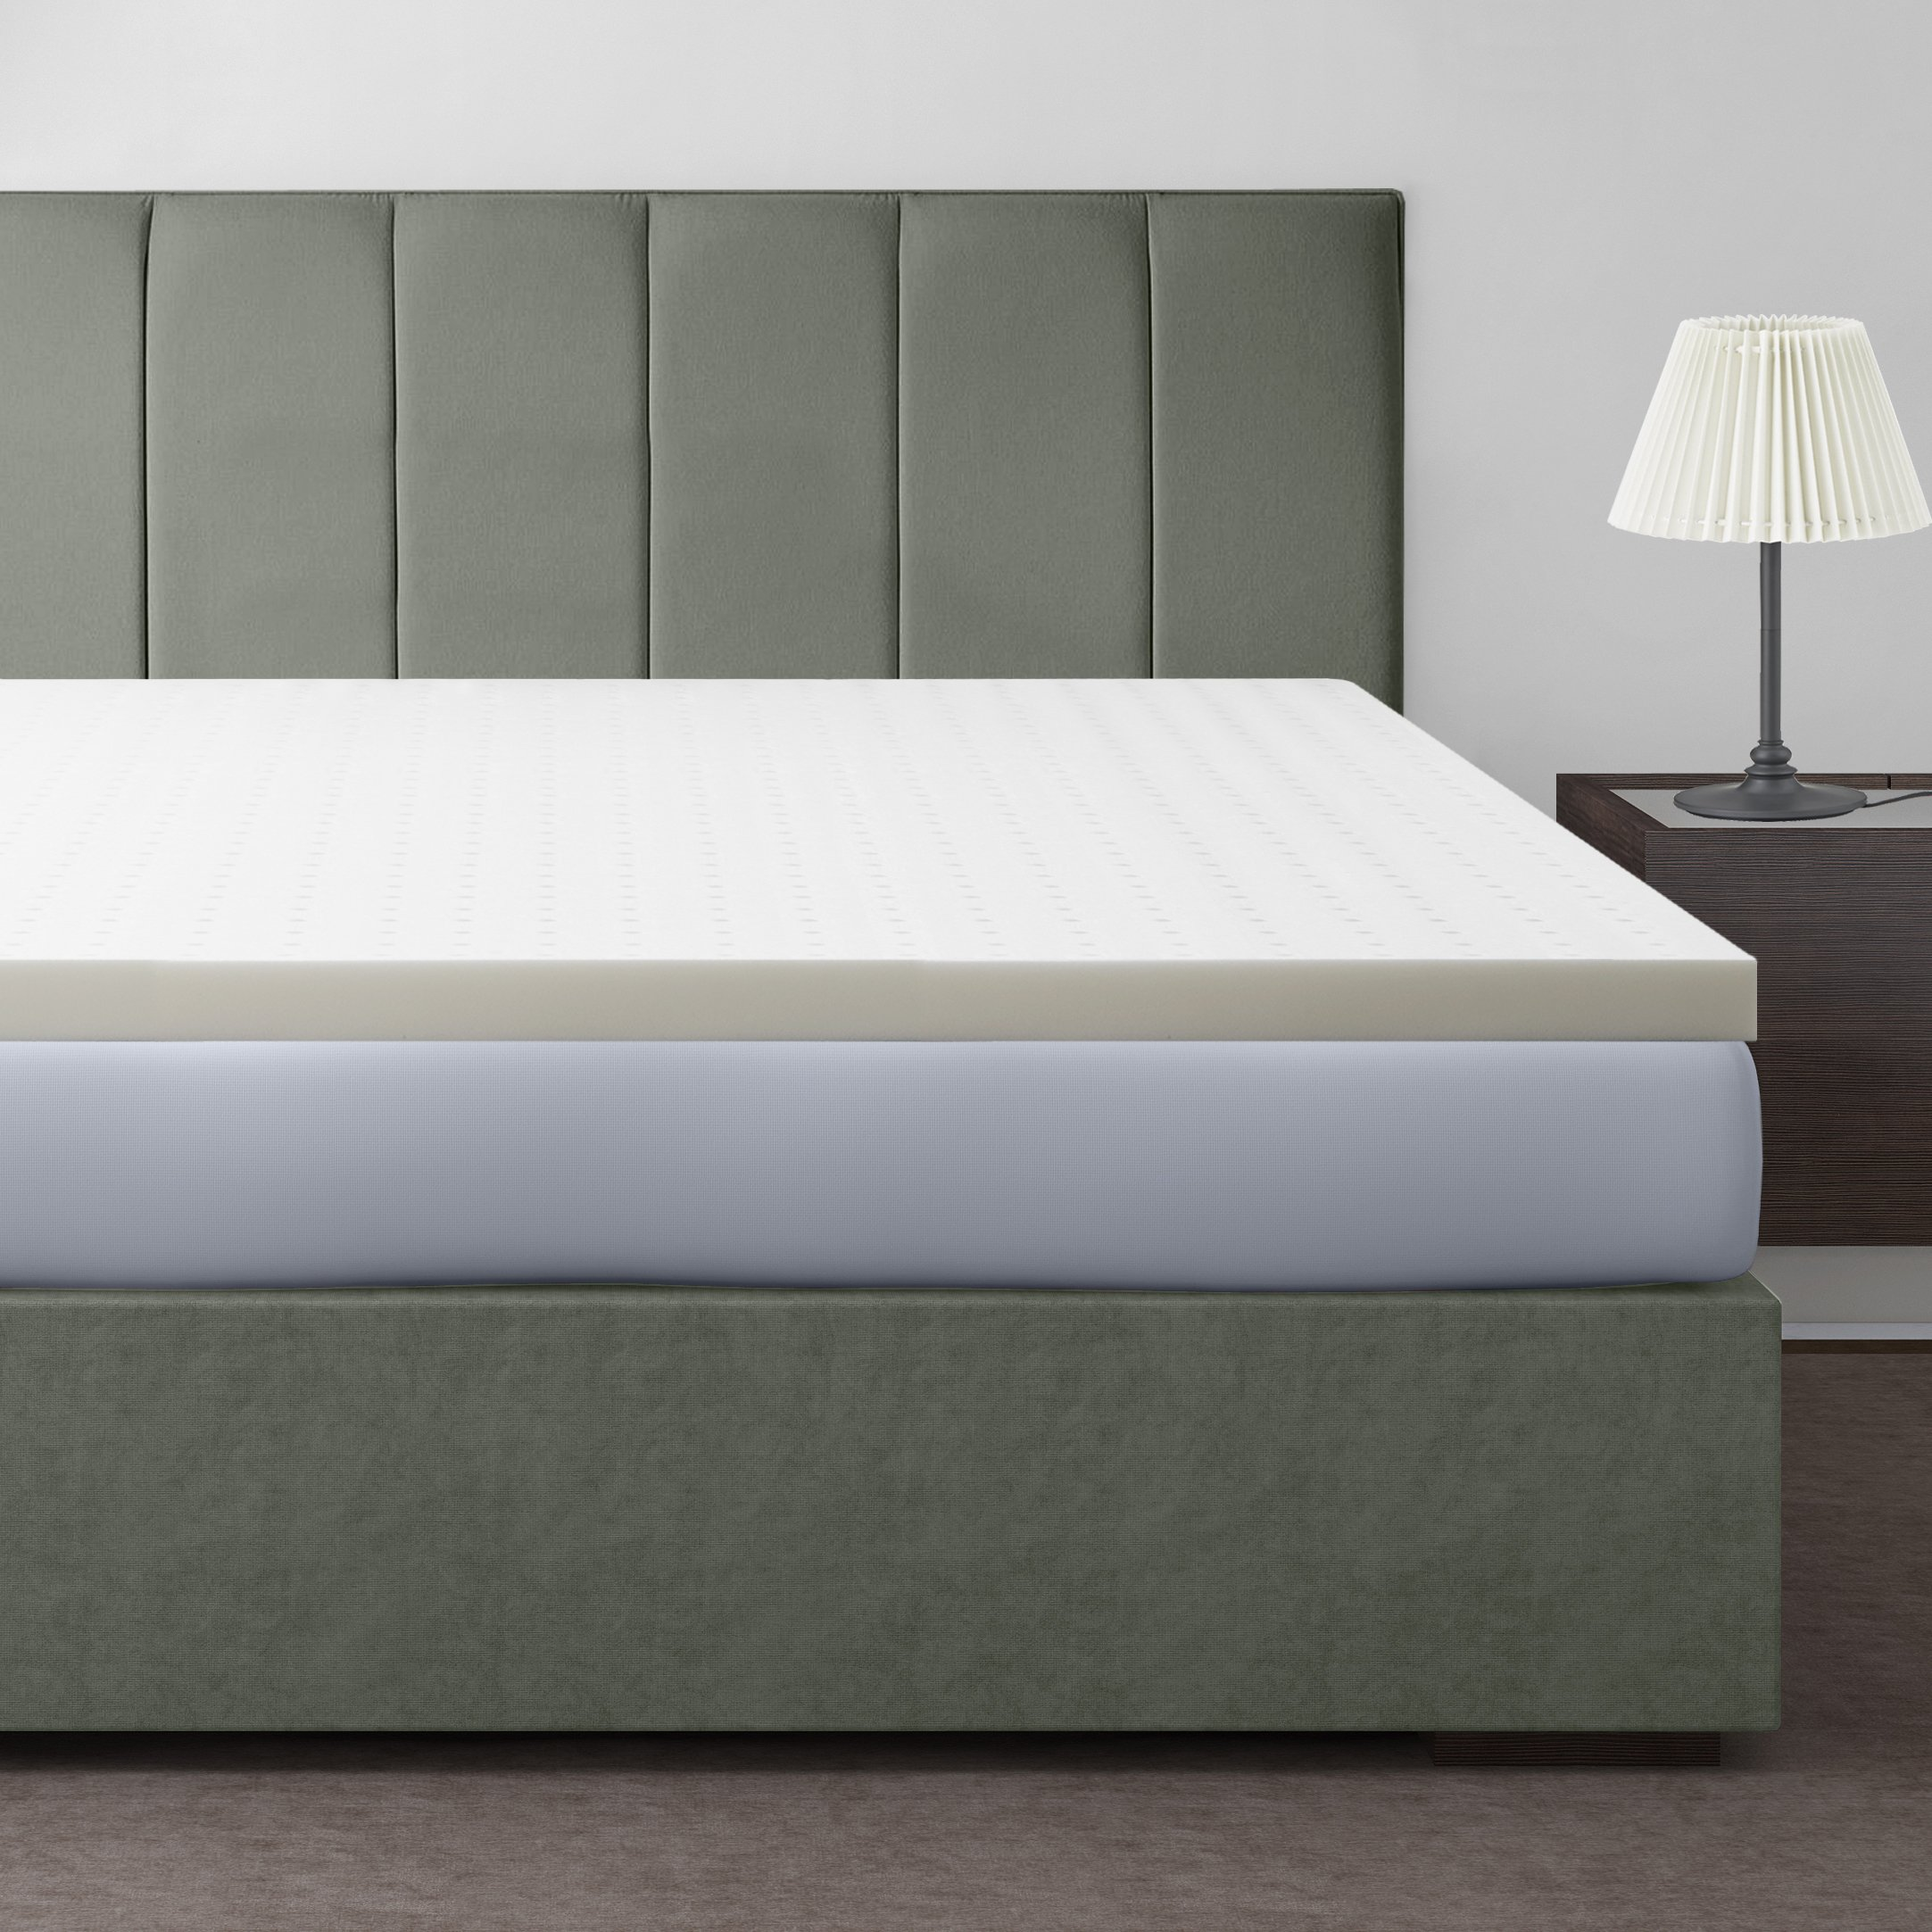 Best Price Mattress Twin XL Mattress Topper - 2.5 Inch Memory Foam Bed Topper with Cooling Mattress Pad, Twin Extra Long Size